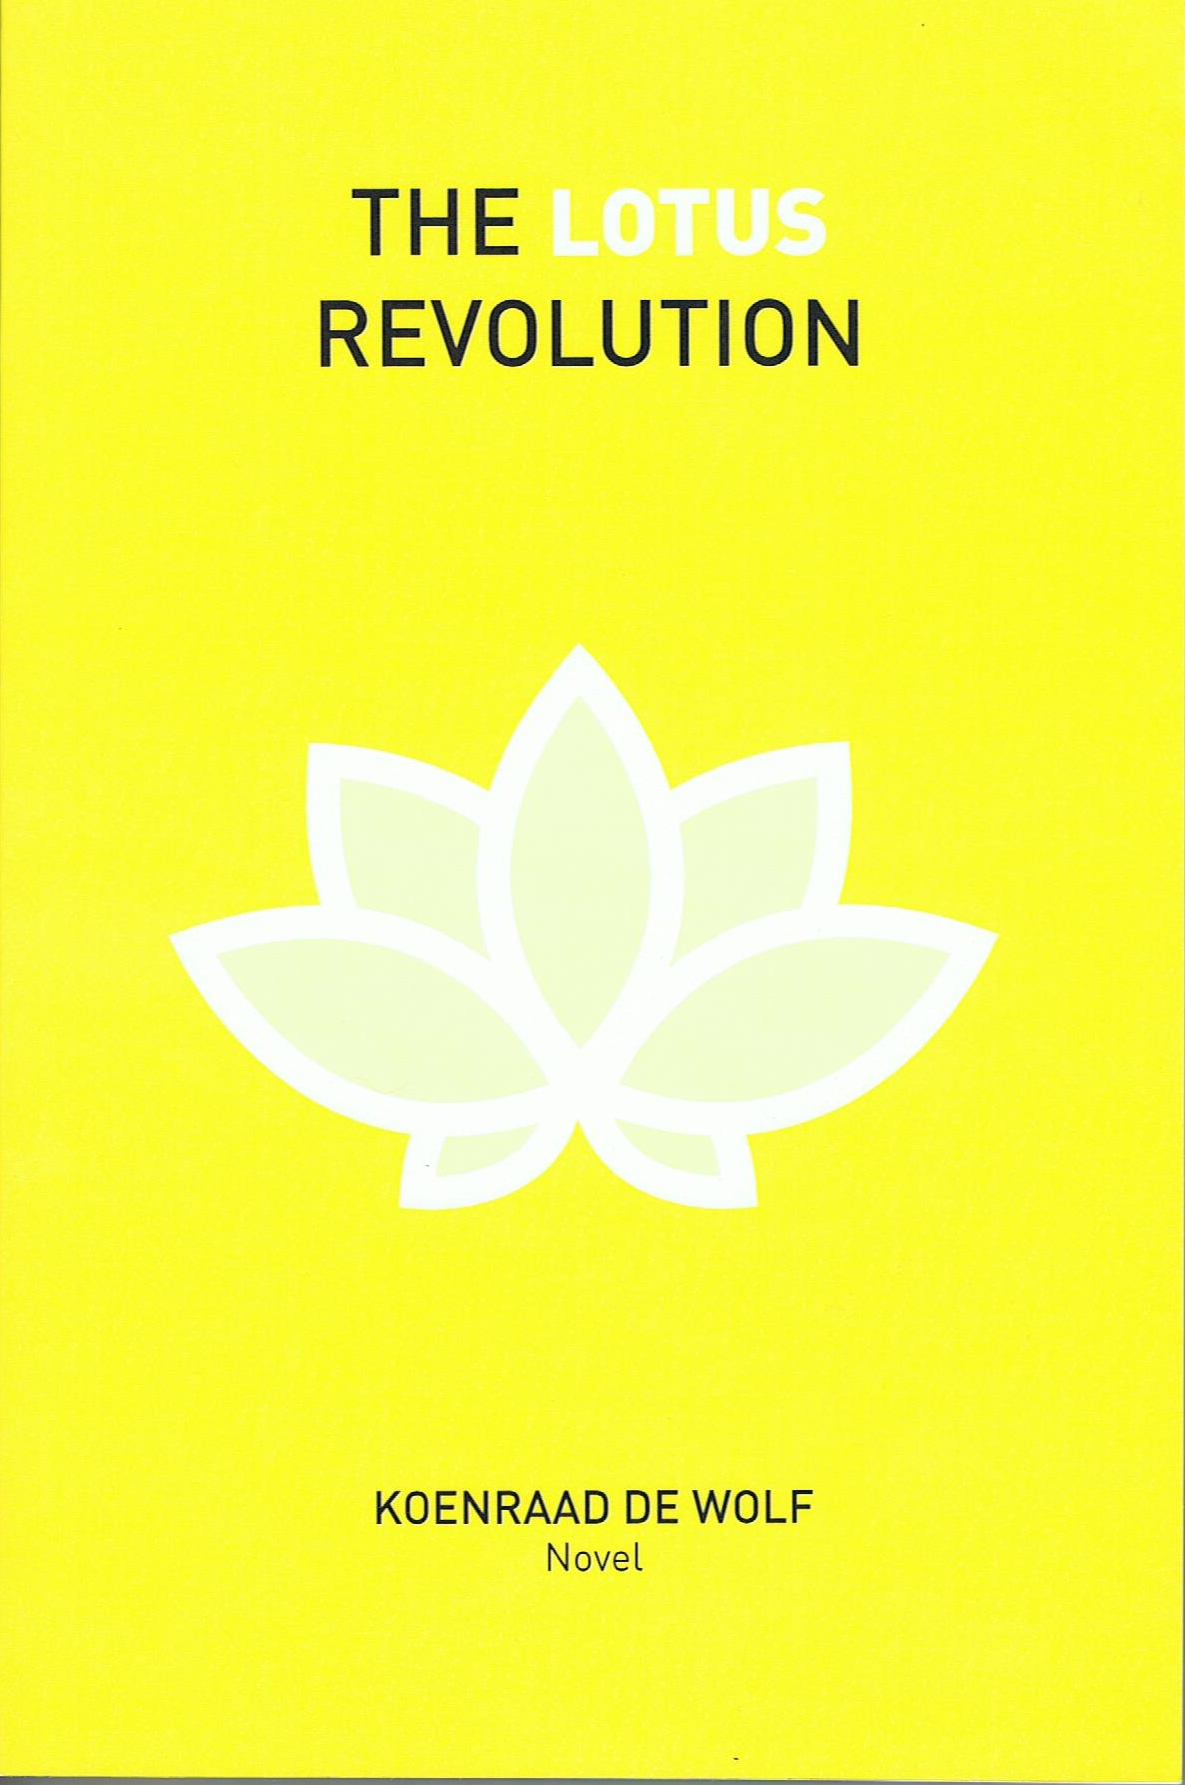 The lotus revolution